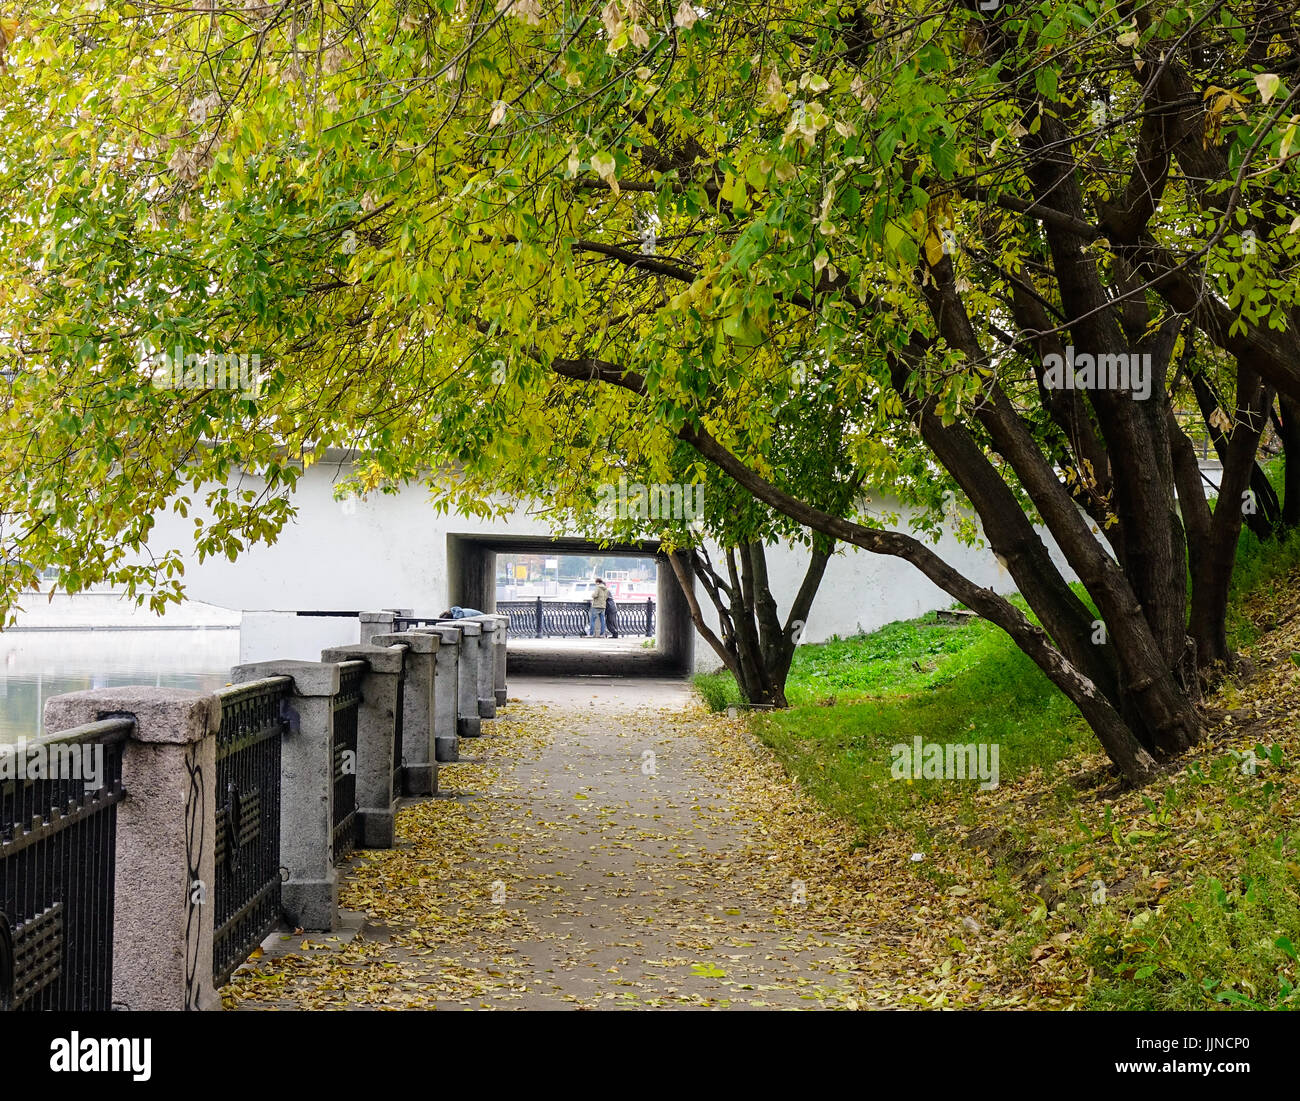 Public park at autumn in Moscow, Russia. Moscow is one of the greenest megacities in the world with more than fifty - Stock Image